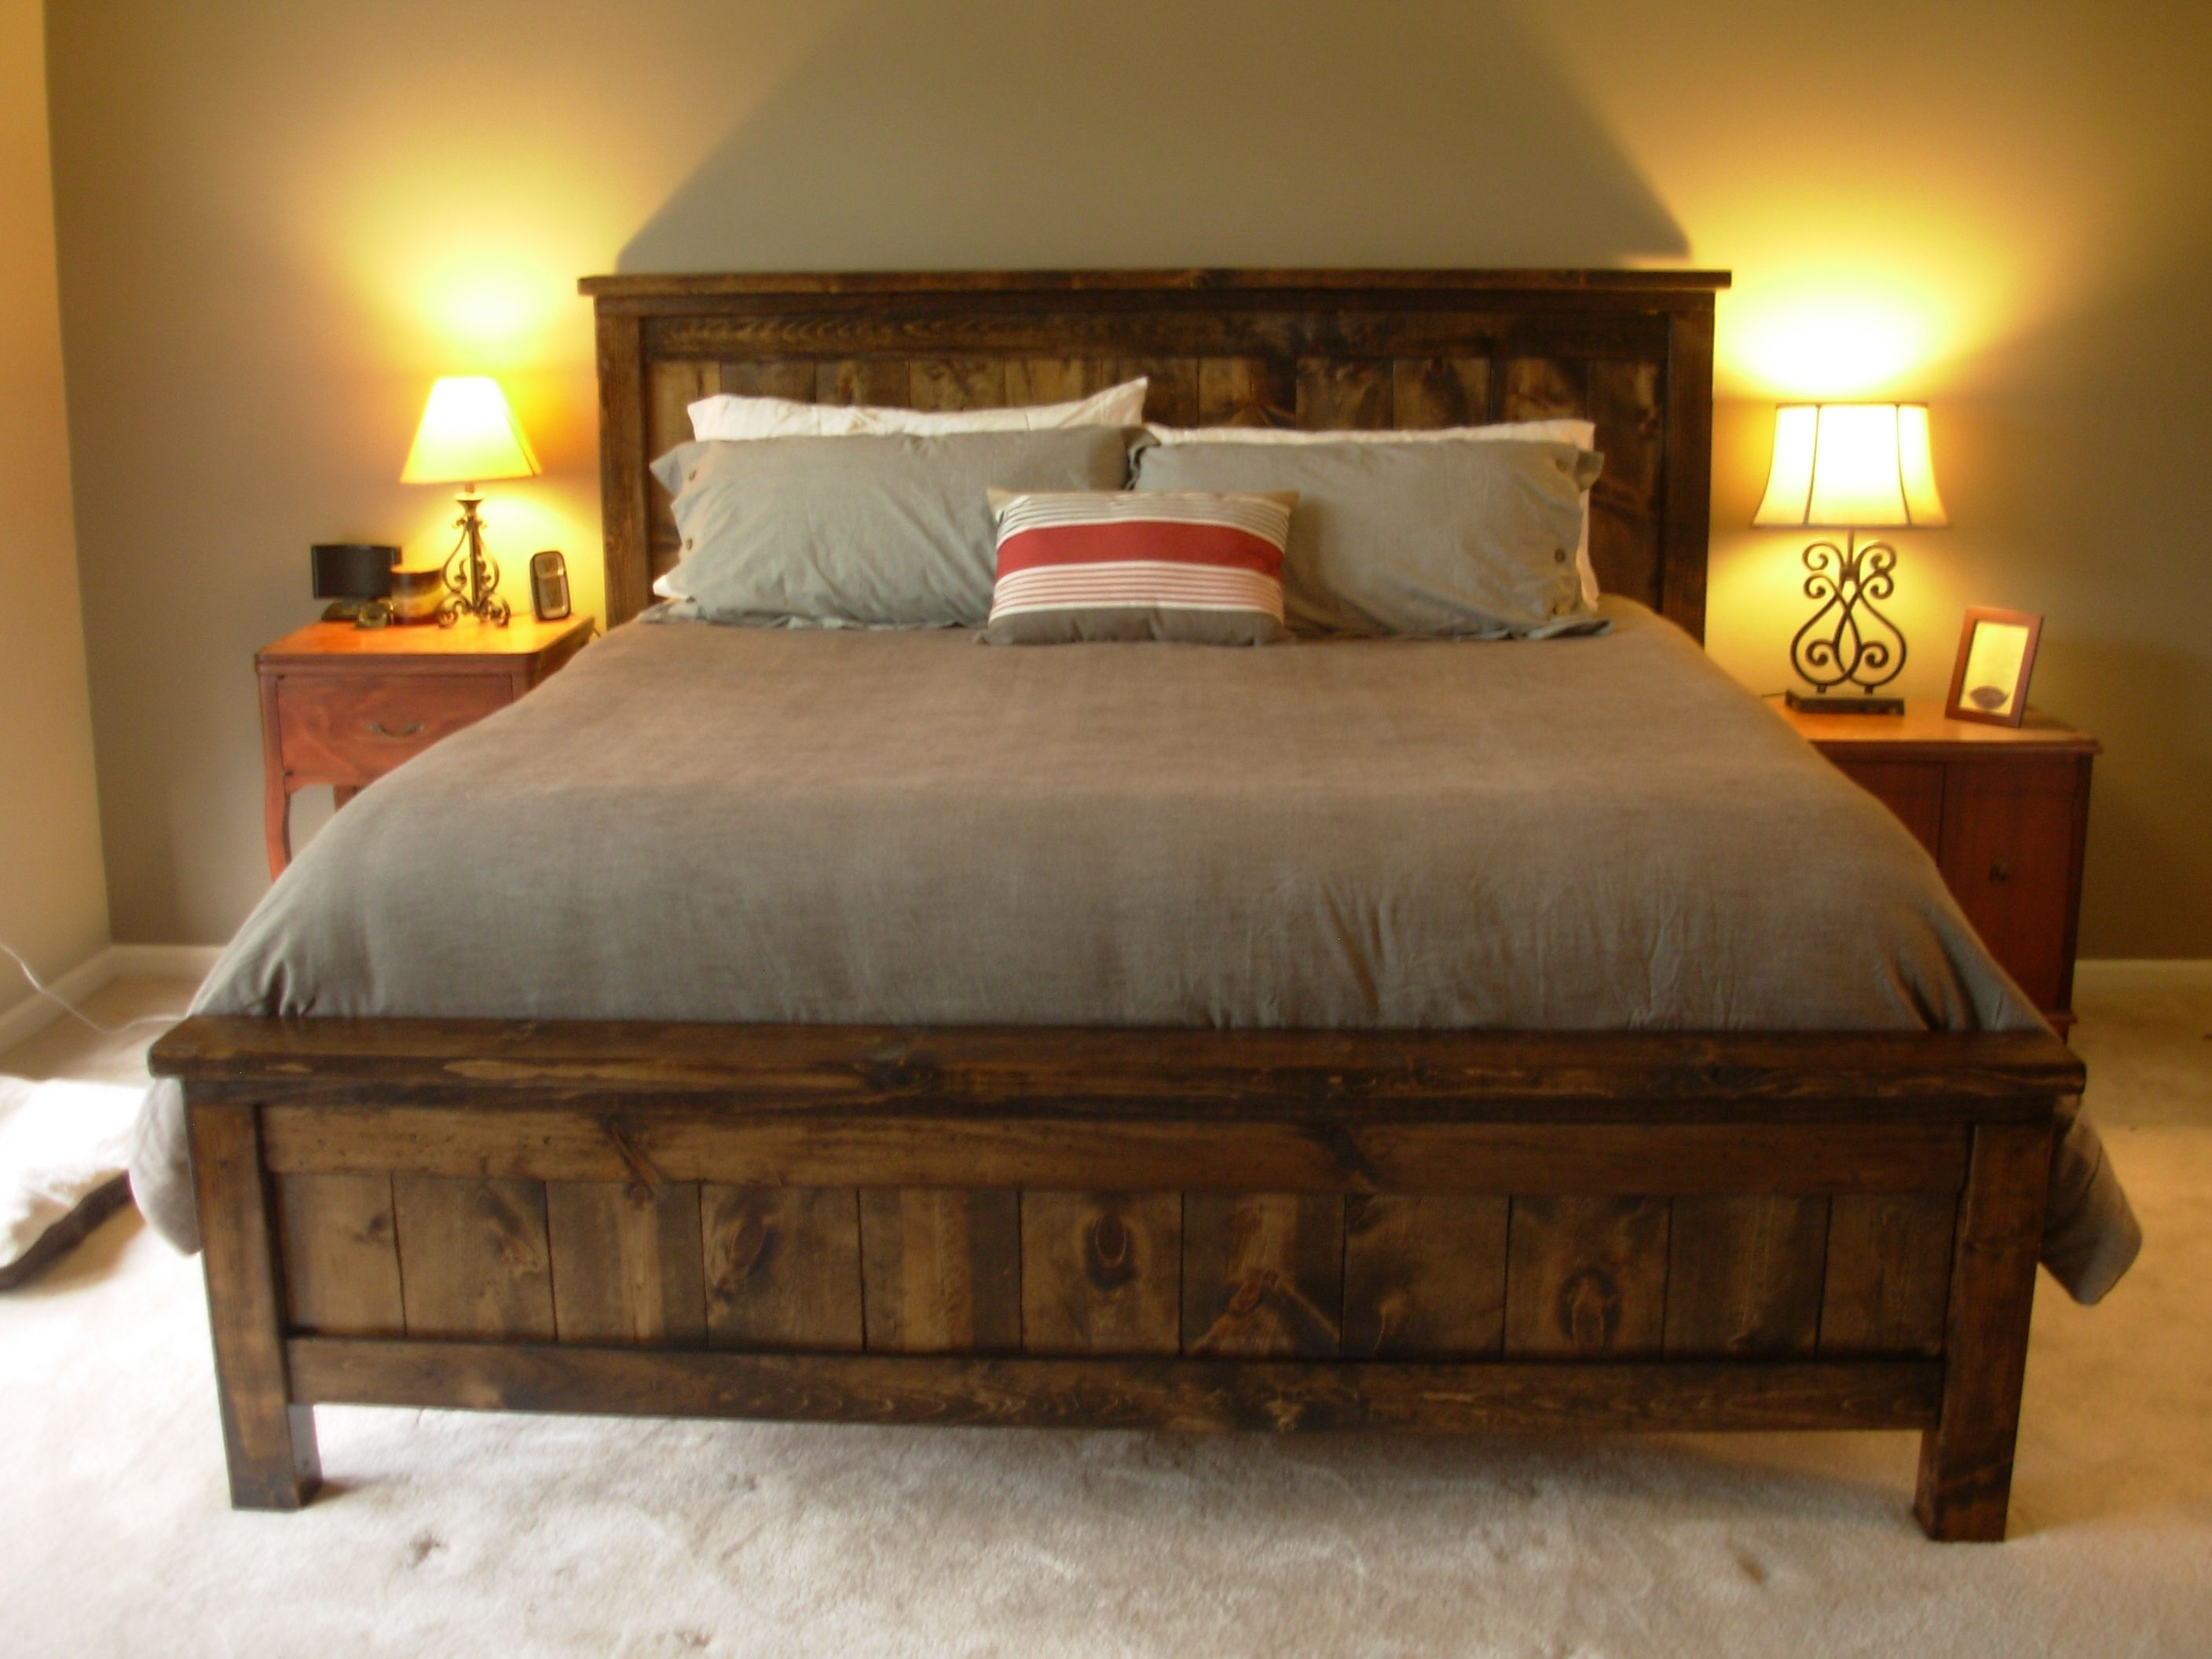 Best Our Farmhouse Bed Adapted From Ana White S Plans 640 x 480